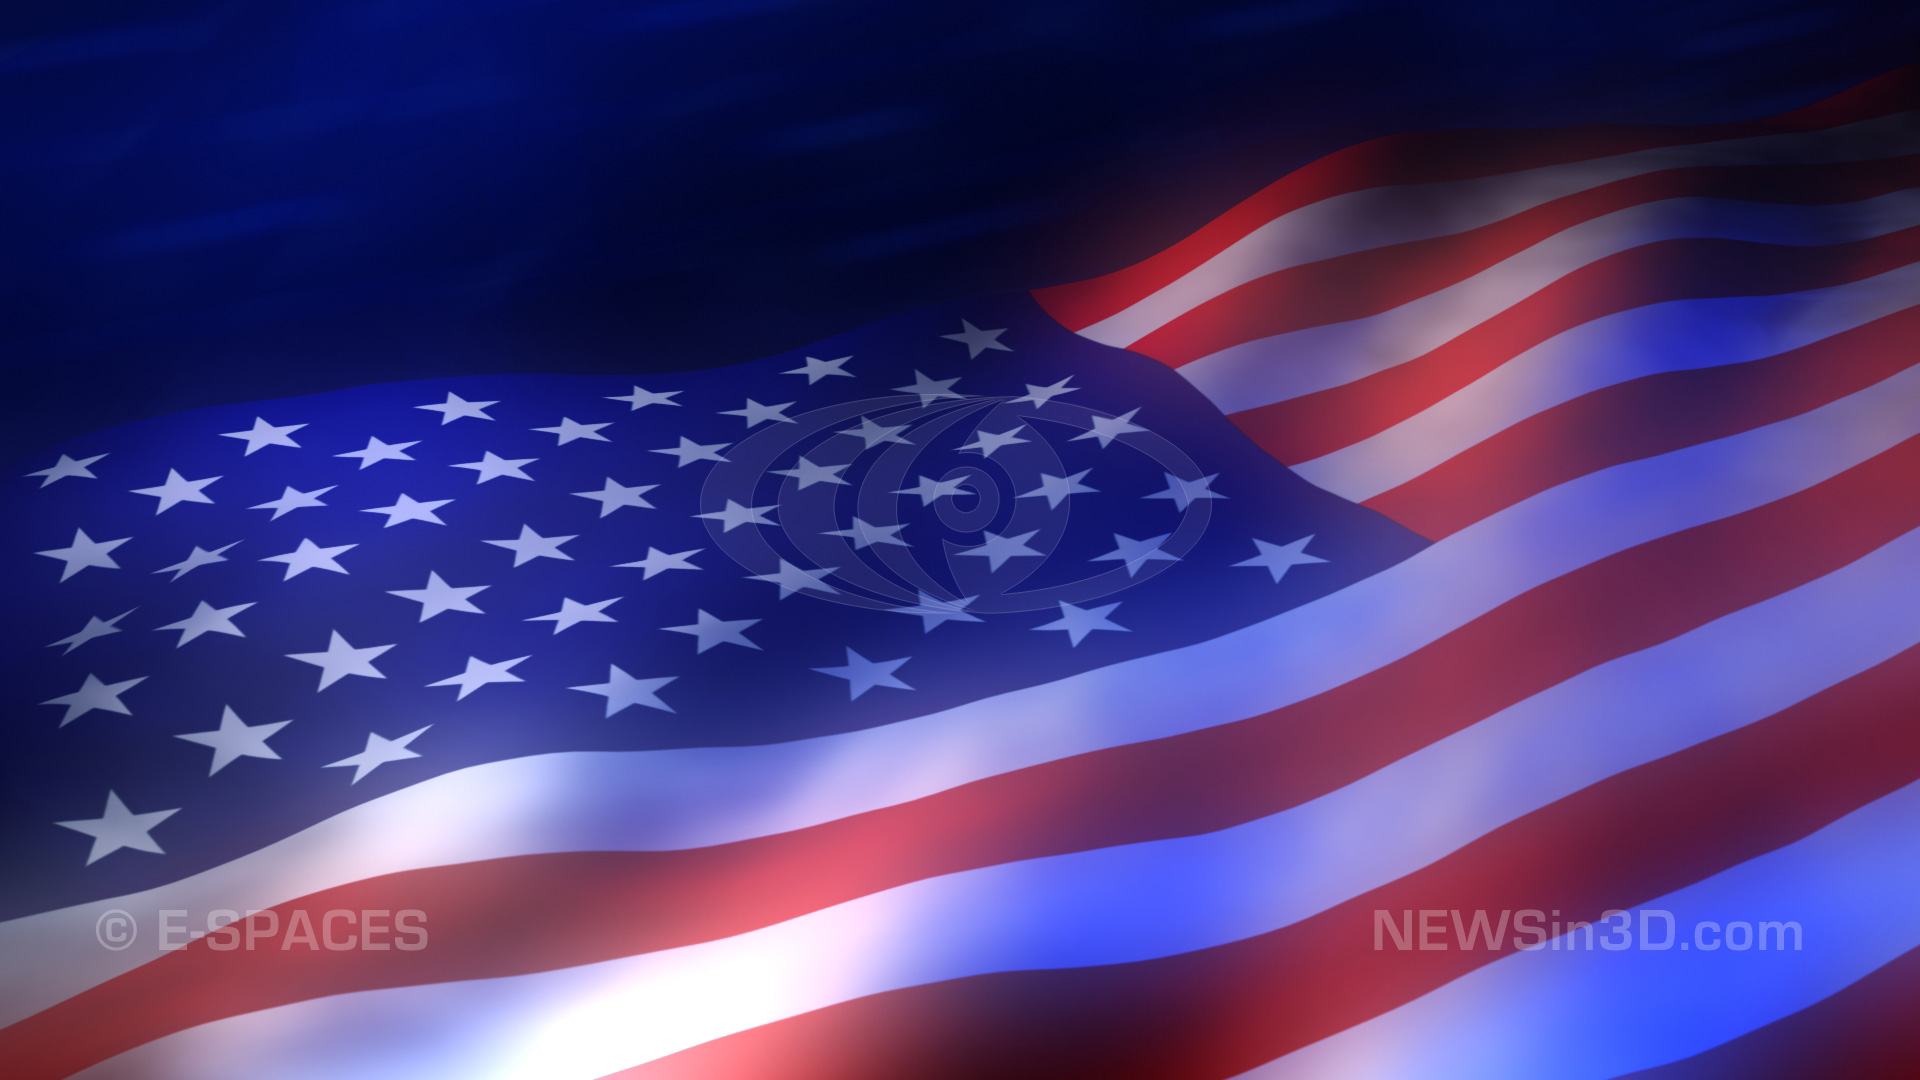 American Flag PPT Backgrounds